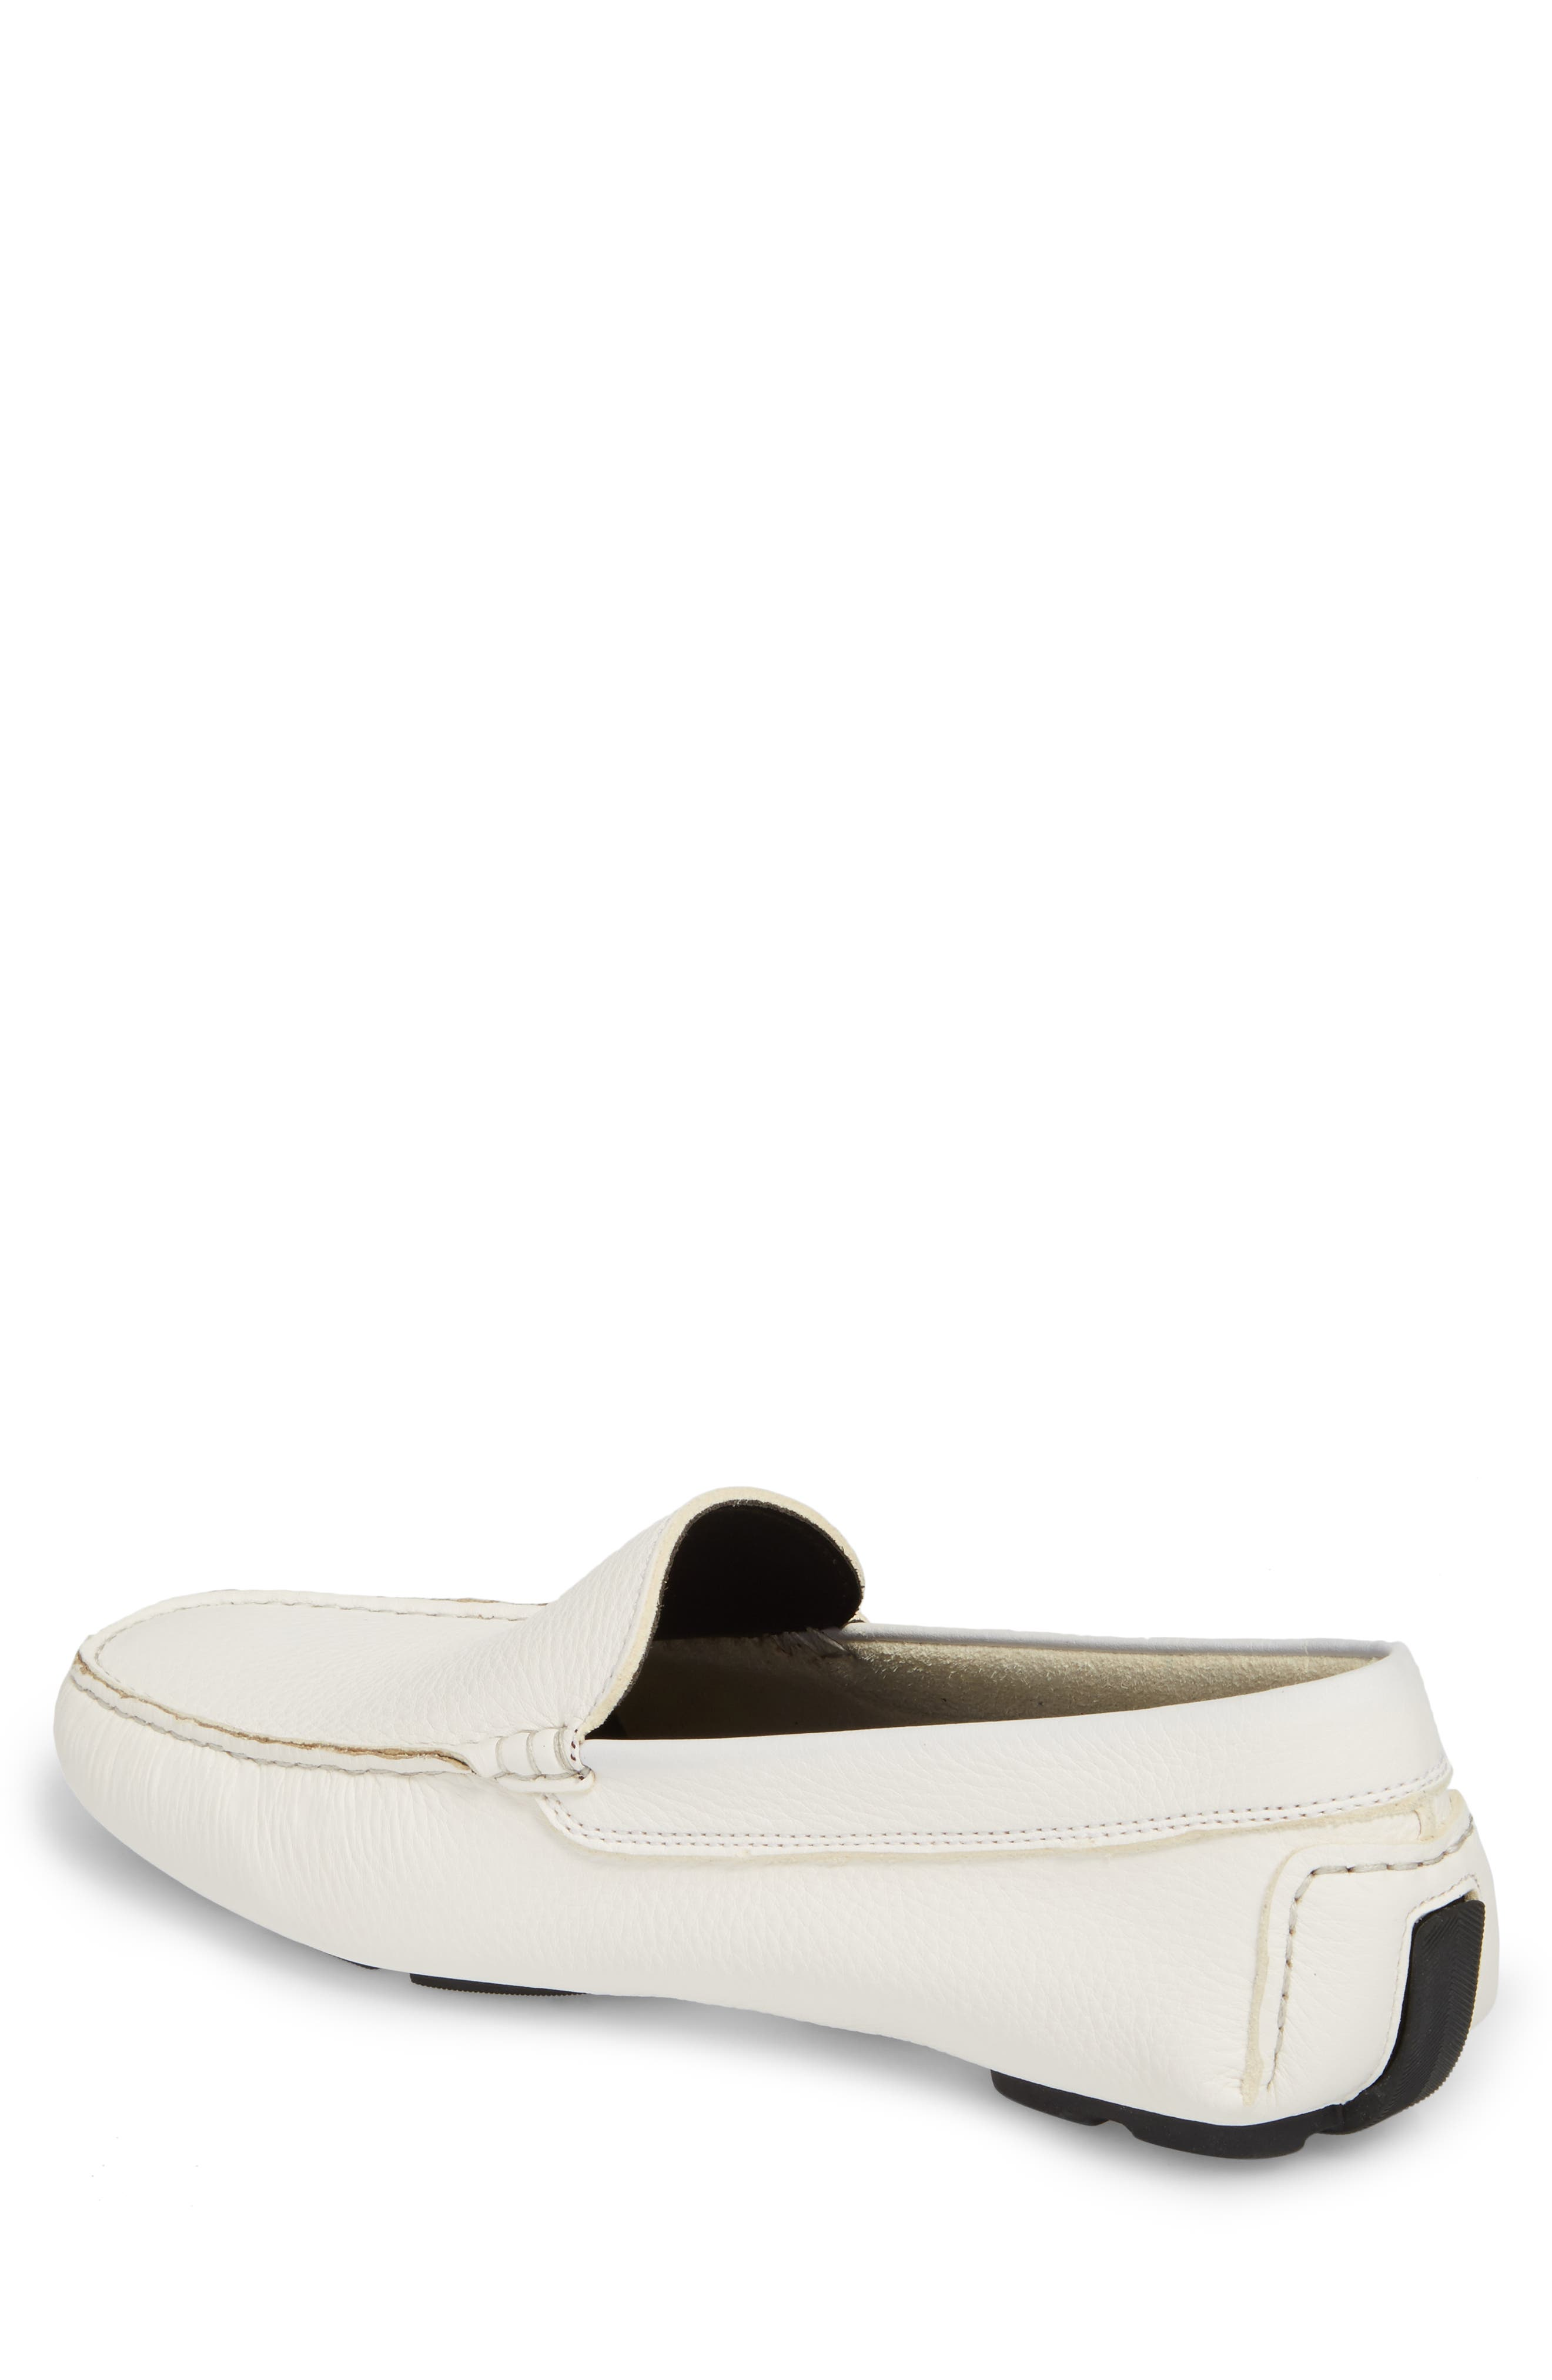 Harlan Driving Loafer,                             Alternate thumbnail 2, color,                             White Leather